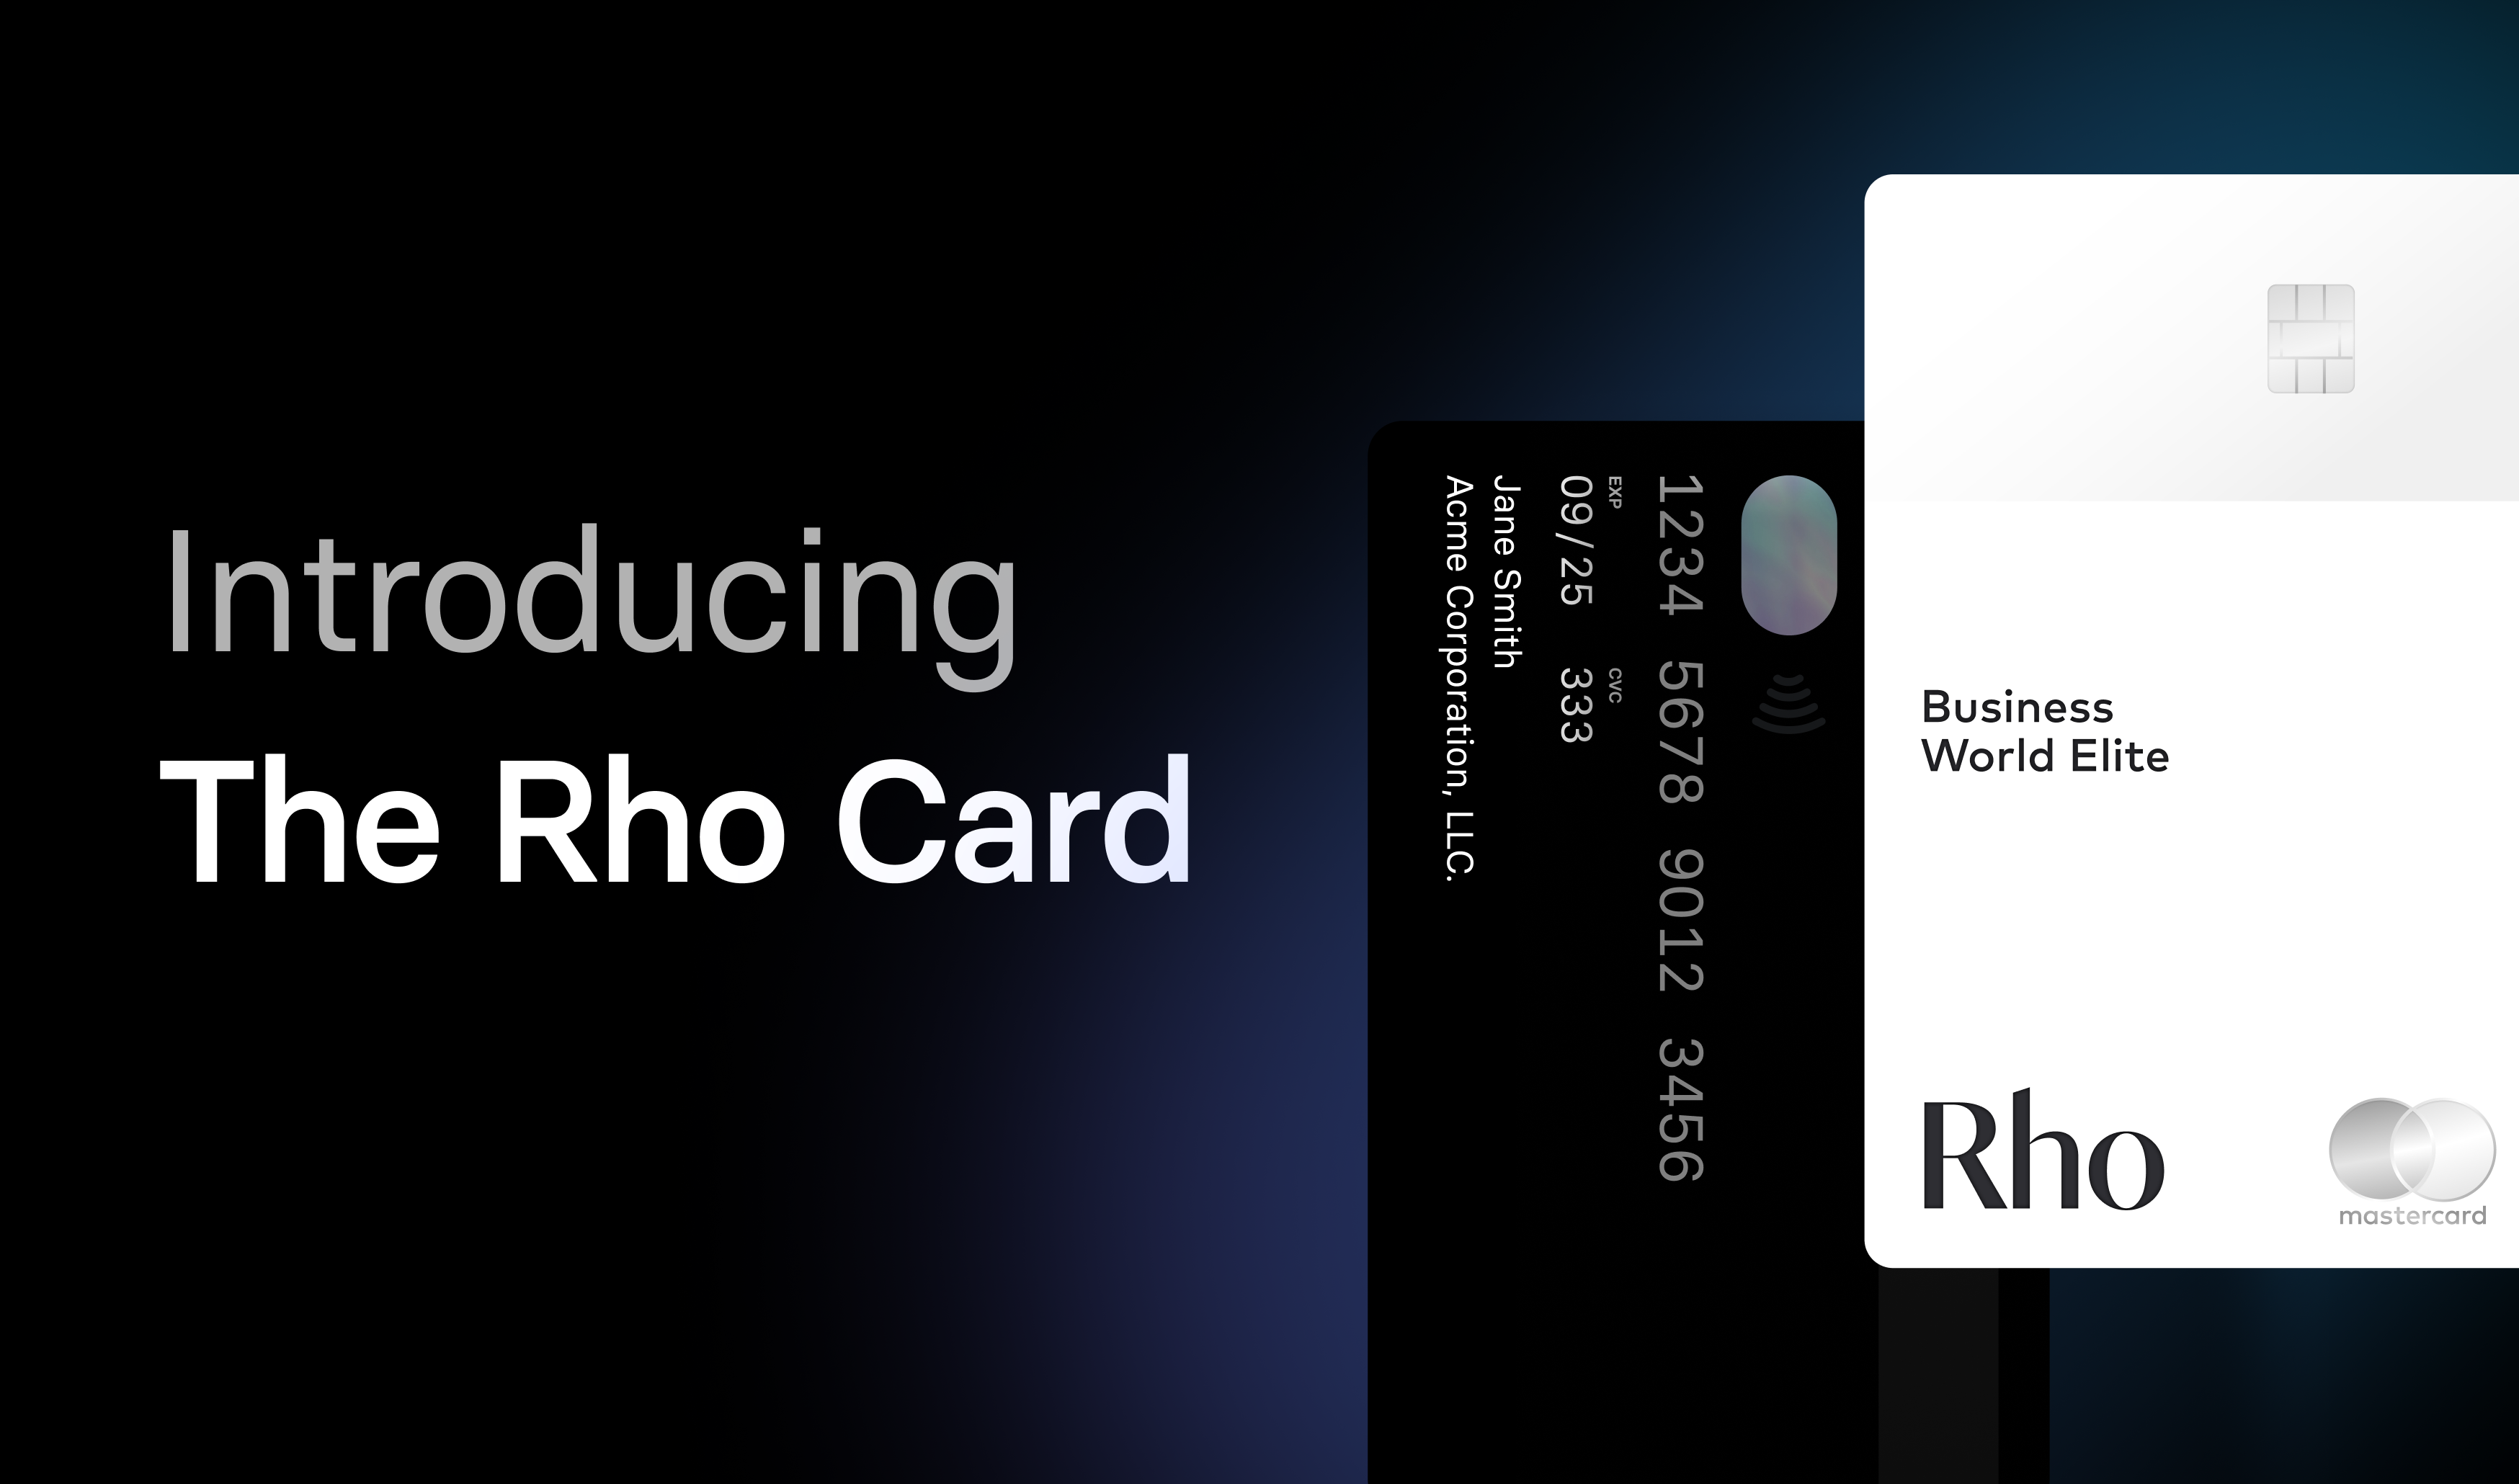 Best corporate card for your team